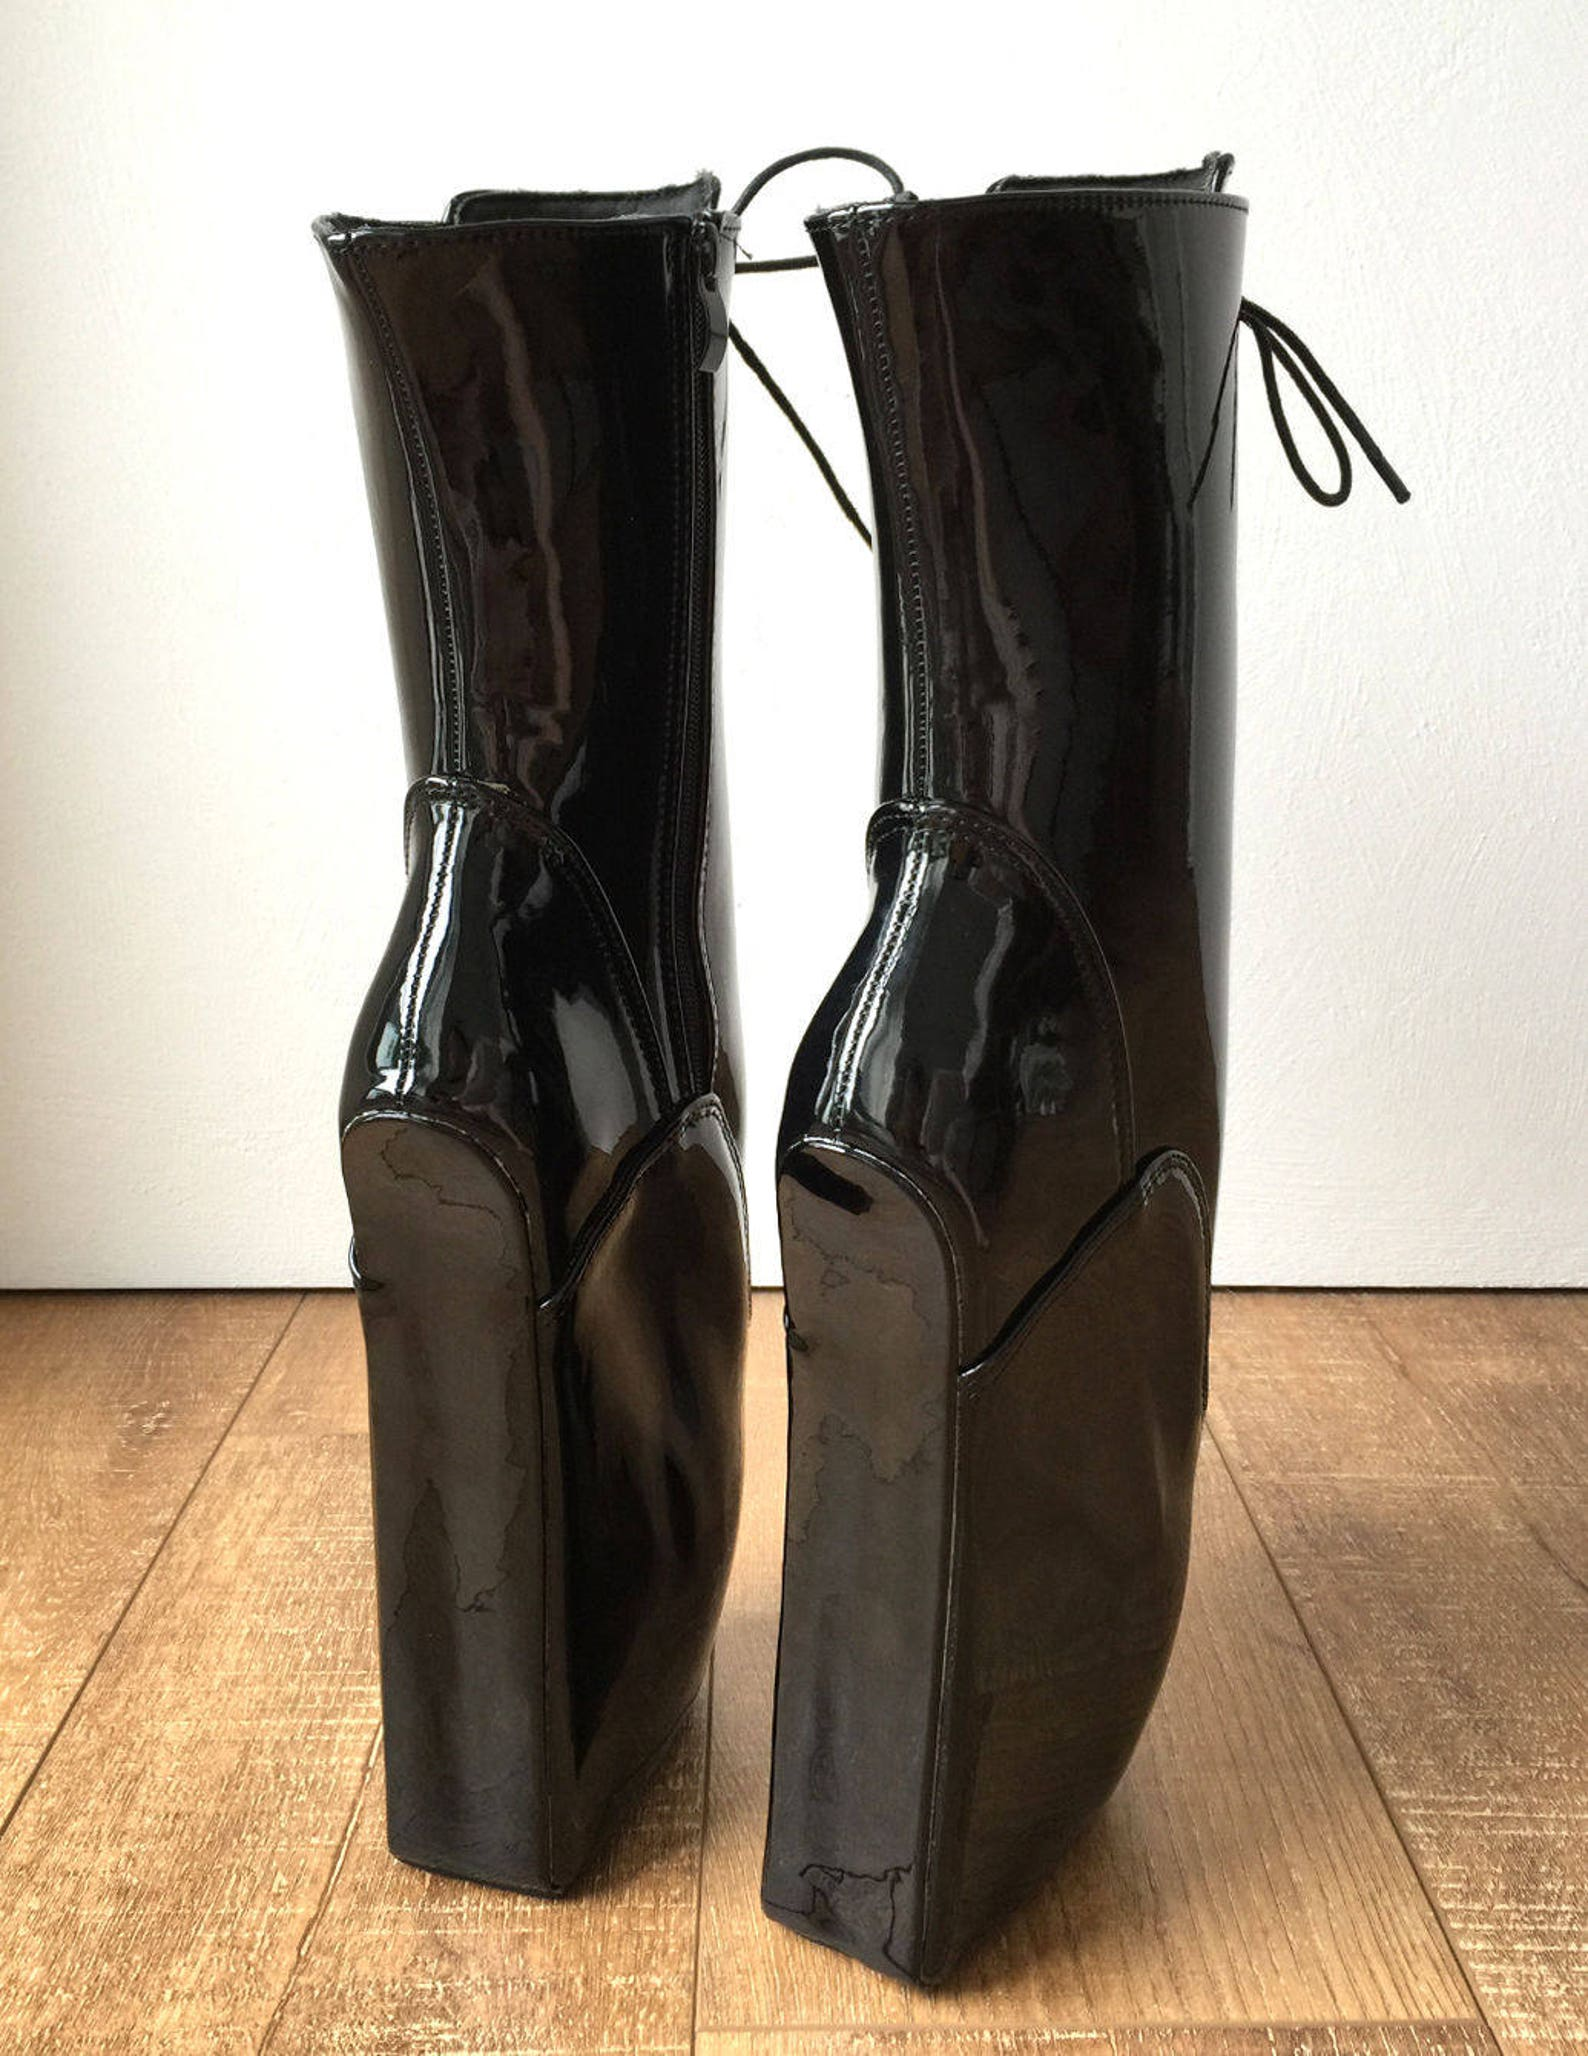 begin iii (w/ zip) ballet wedge hoof heelless fetish pointe training newbies